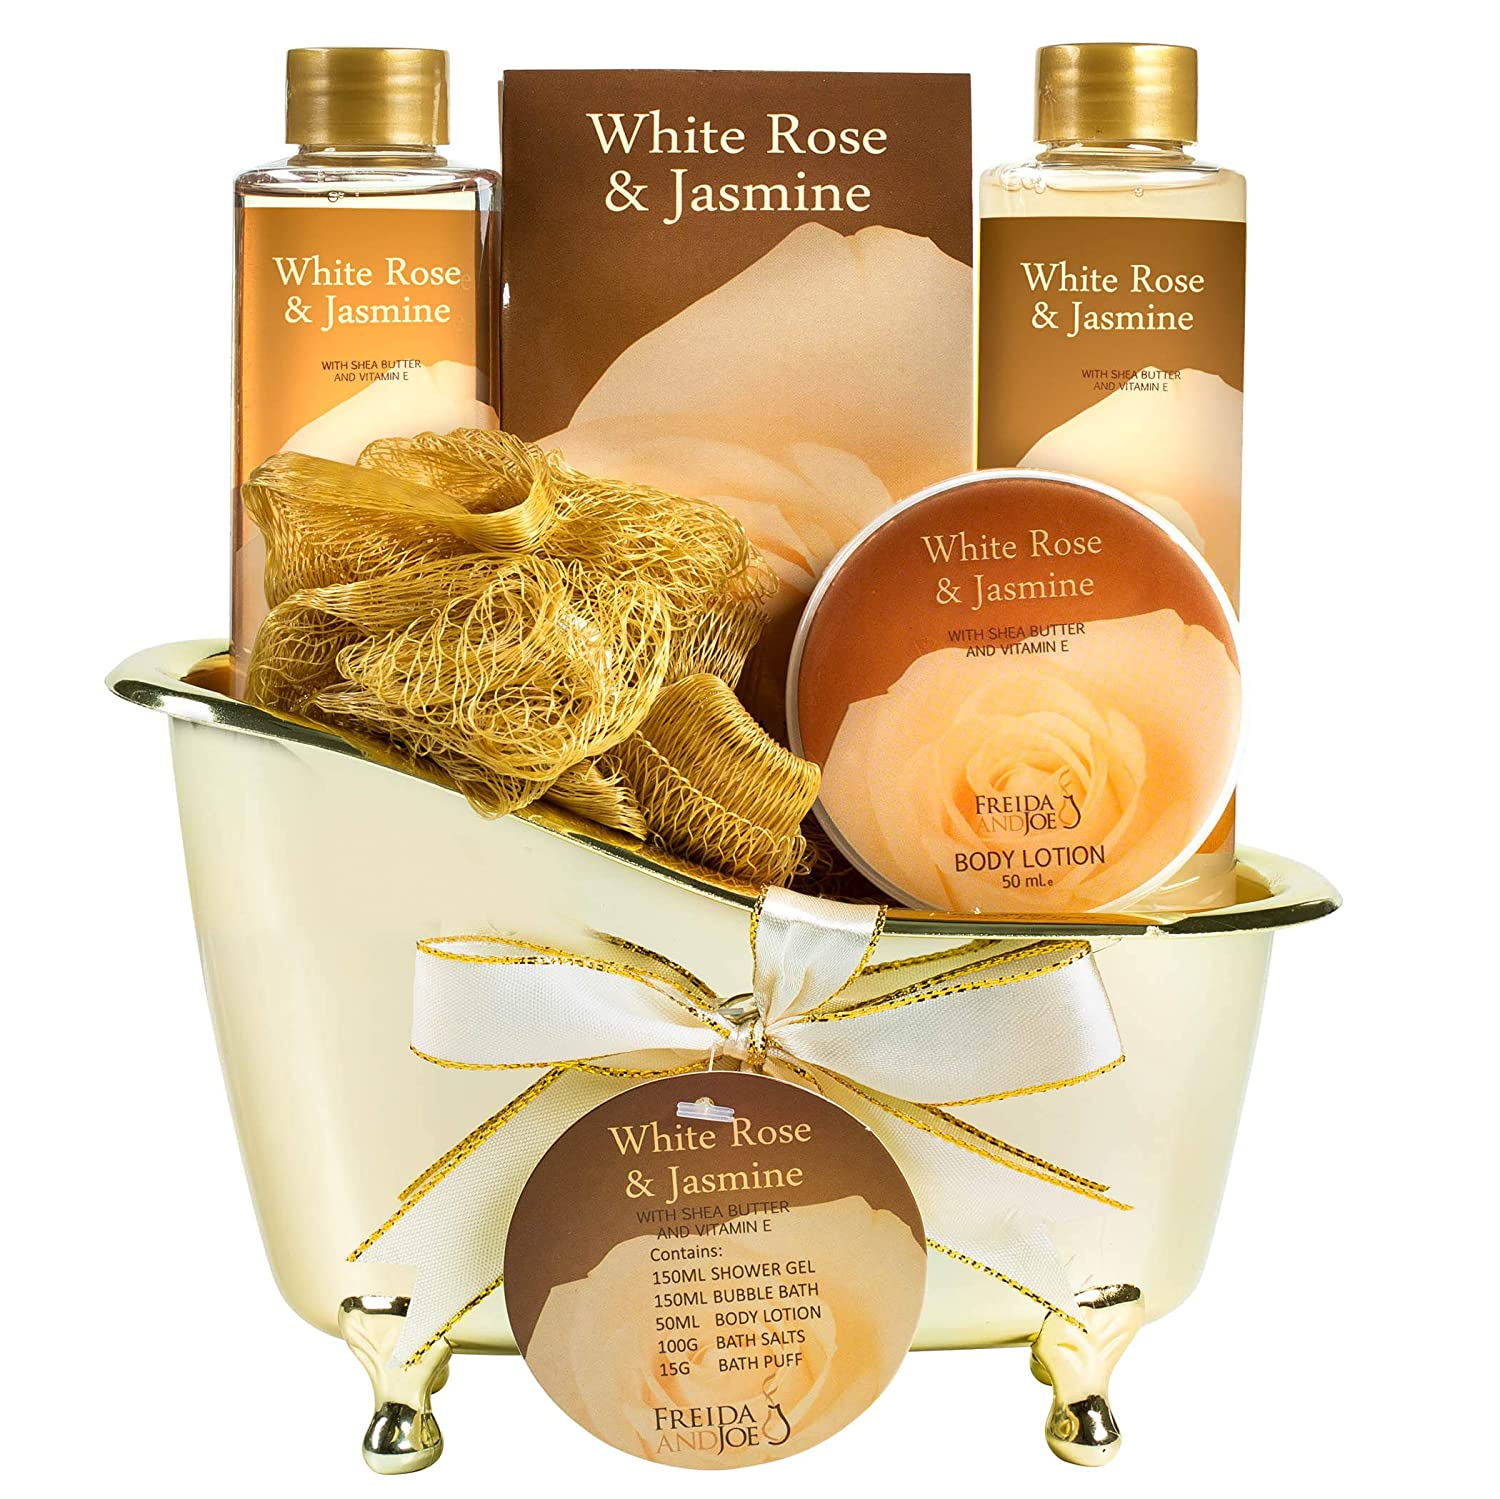 Home Spa Gift Basket - White Rose Jasmine Spa Set For Women - Luxury Bath & Body Set For Women - Contains Shower Gel, Bubble Bath, Body Lotion, Jasmine Bath Salt and Pouf Displayed in Elegant Gold Tub : Bath And Shower Product Sets : Beauty